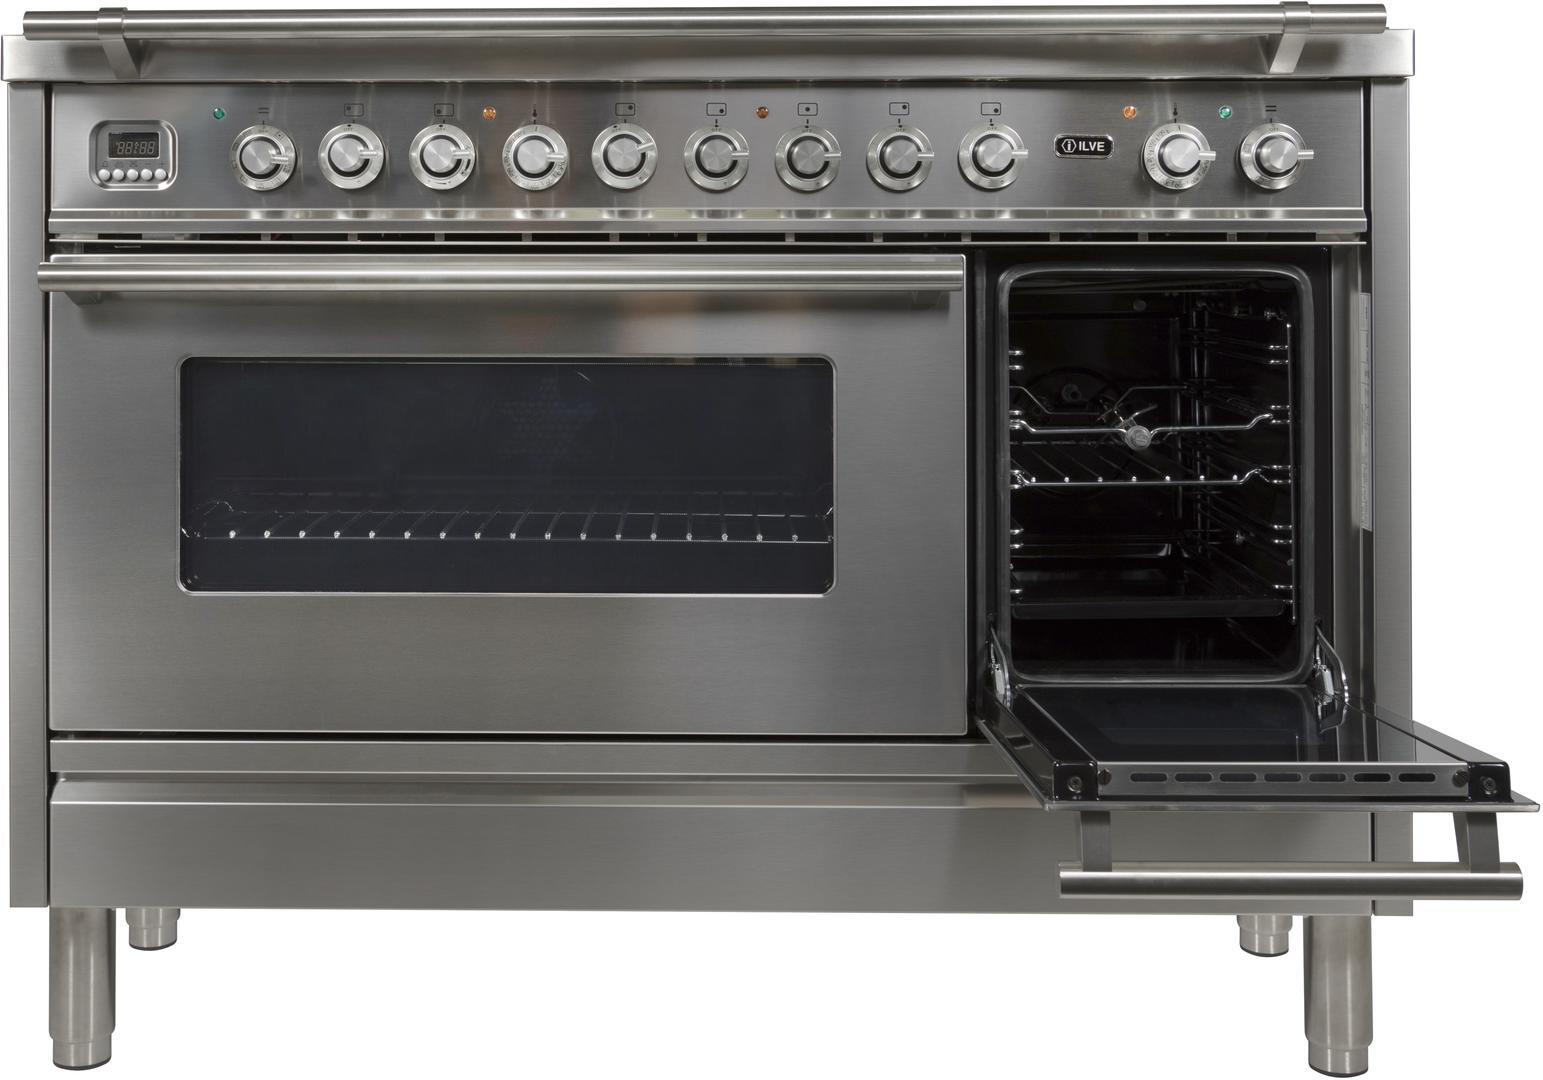 Ilve Professional Plus UPW120FDMPI Freestanding Dual Fuel Range Stainless Steel, Secondary Door Opened